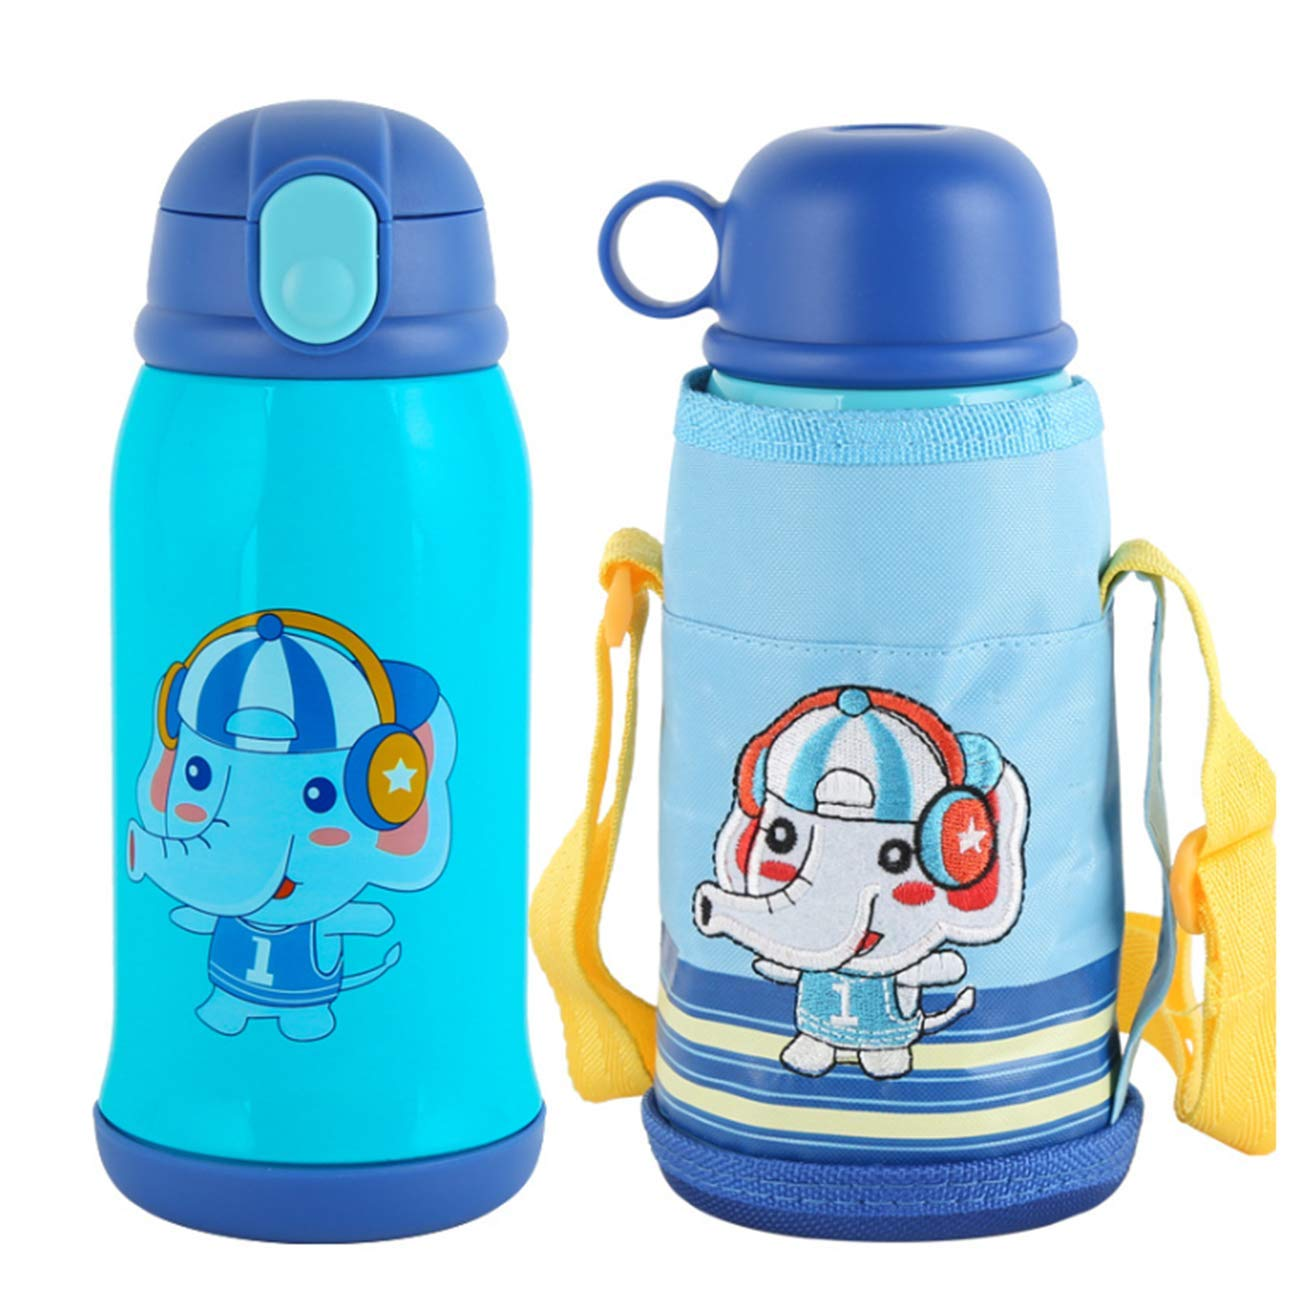 XIUHAO Children's Thermos, Vacuum Stainless Steel Water Bottle with Soft Silicone Straw Cup Bag Long-Lasting Insulation for Children by XIUHAO